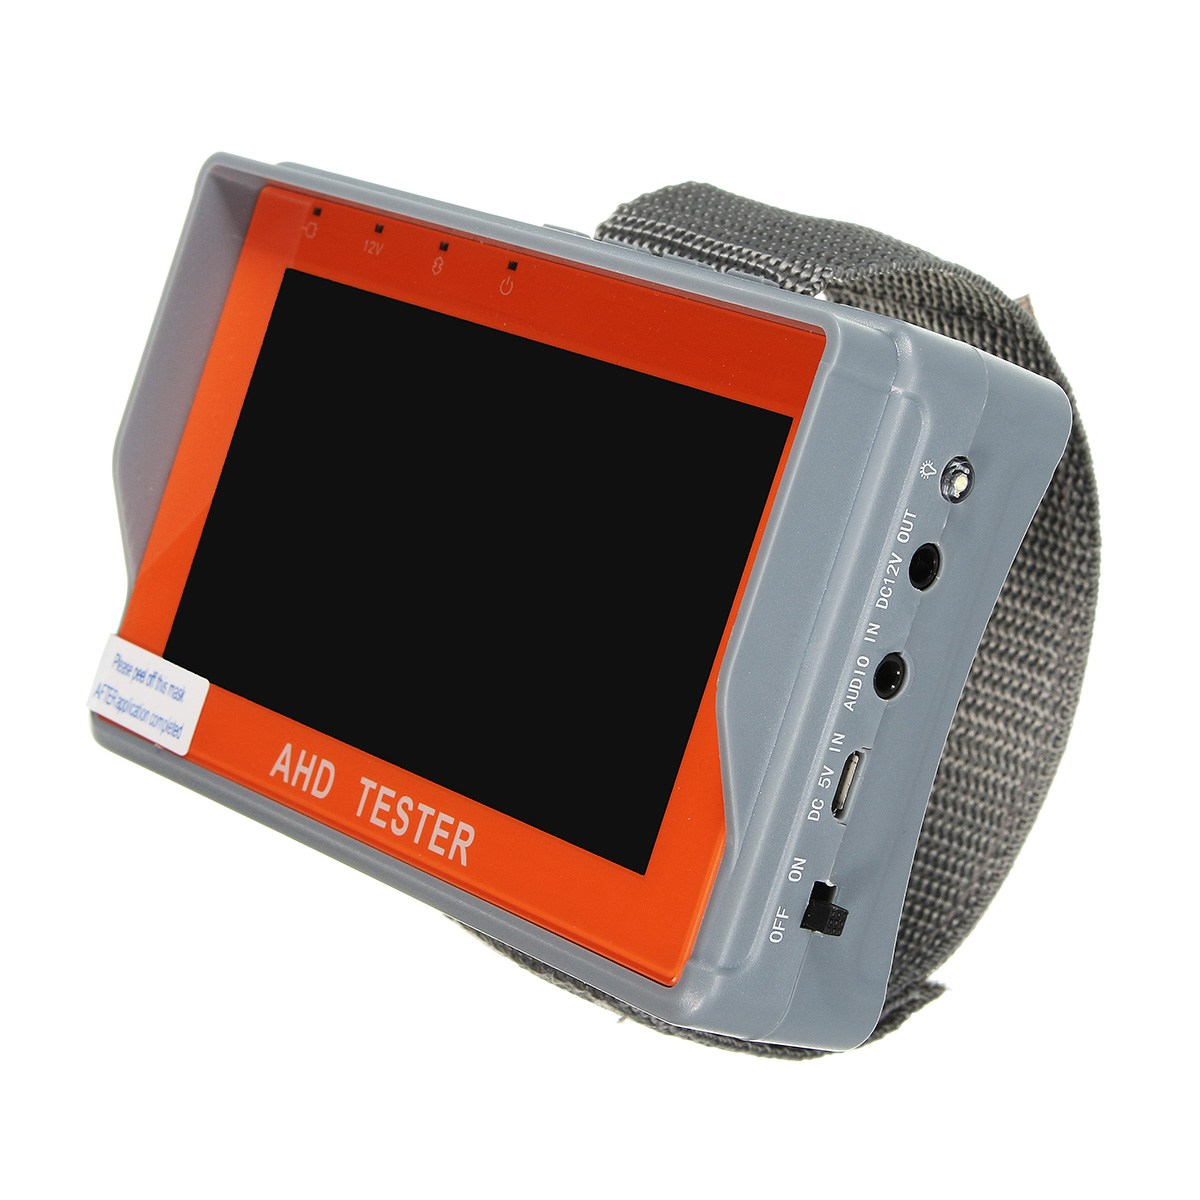 Safurance 4.3 inch TFT LCD HD CCTV AHD Tester Monitor Analog Camera UTP Cable PTZ 12V Home Security